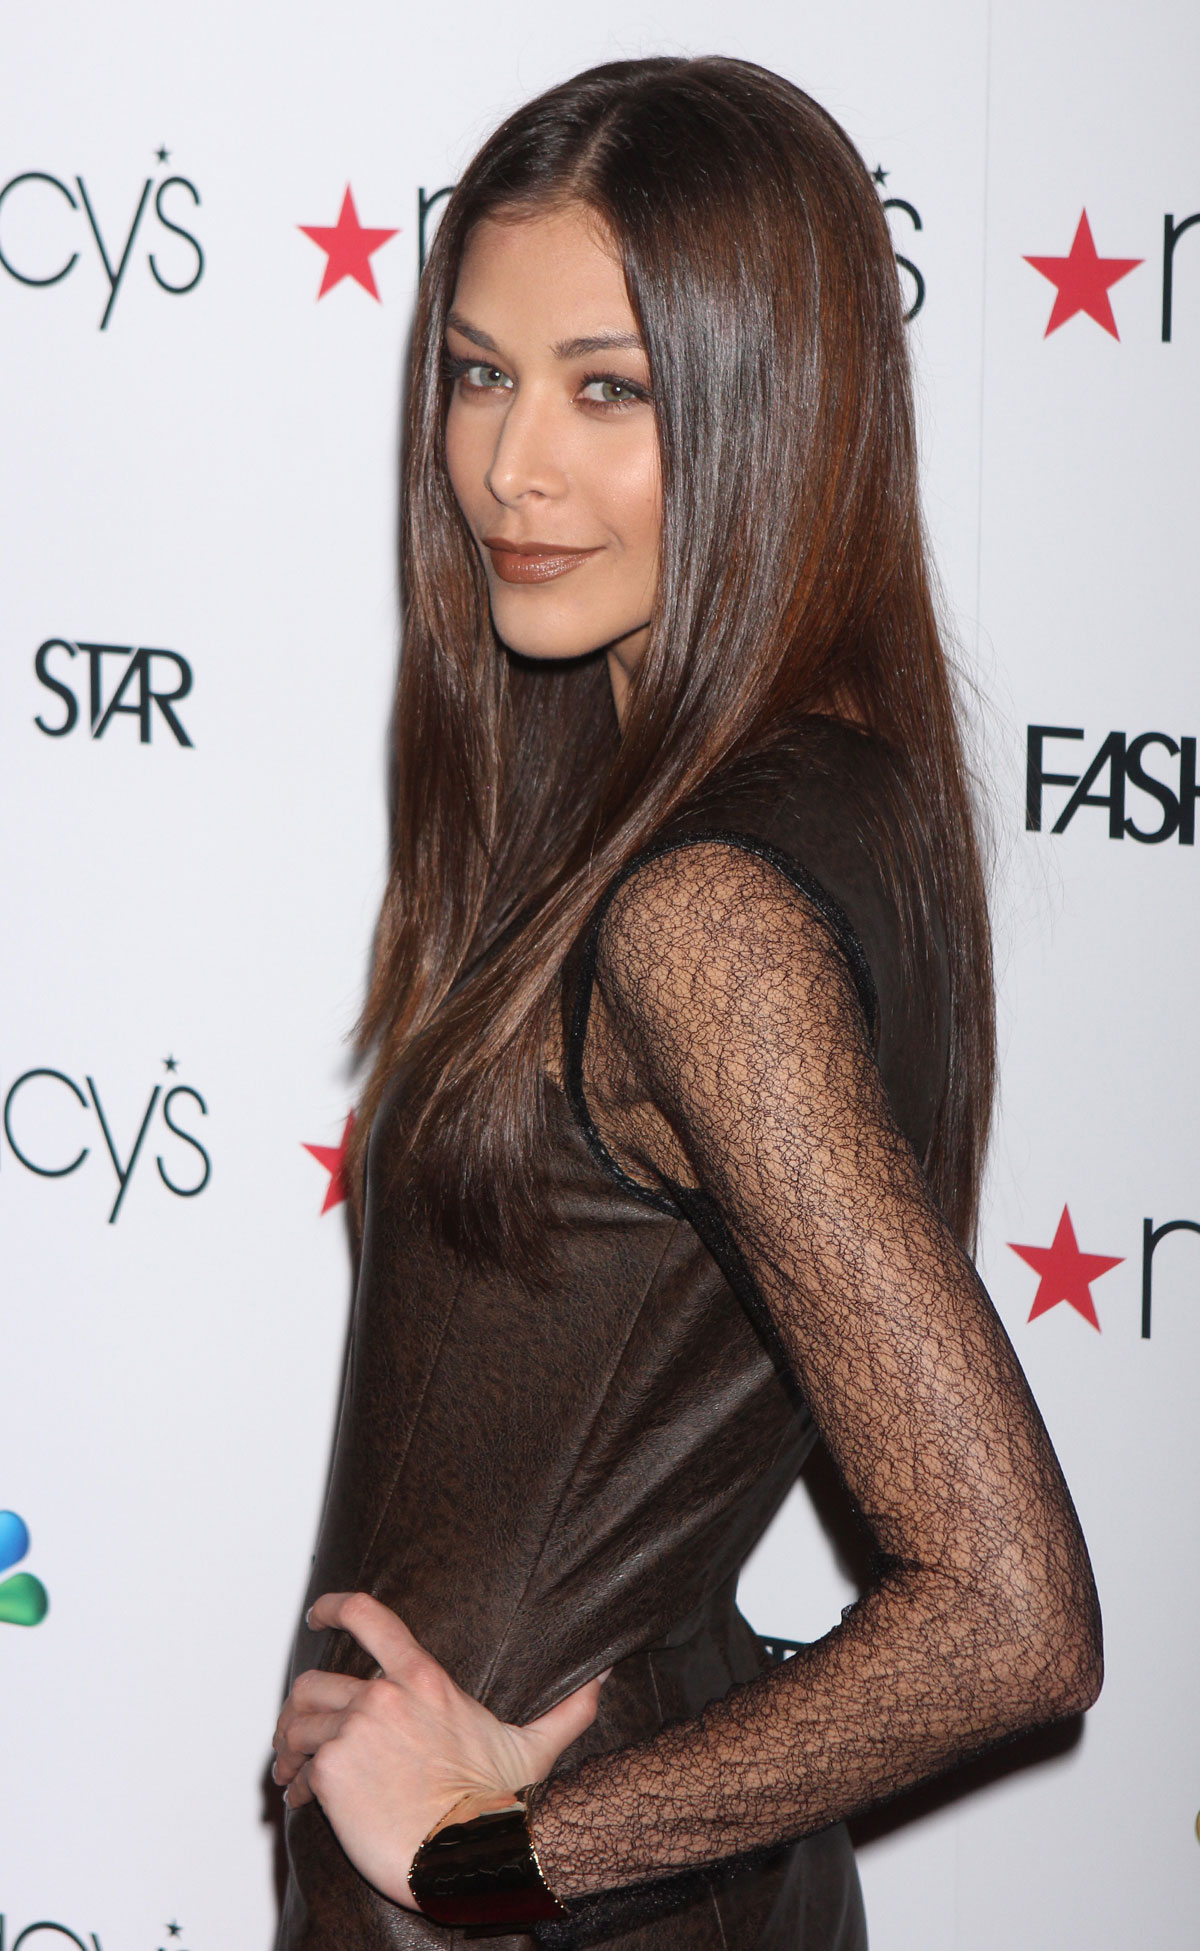 Photos: DAYANA MENDOZA At NBC's Fashion Star Premiere Party In New